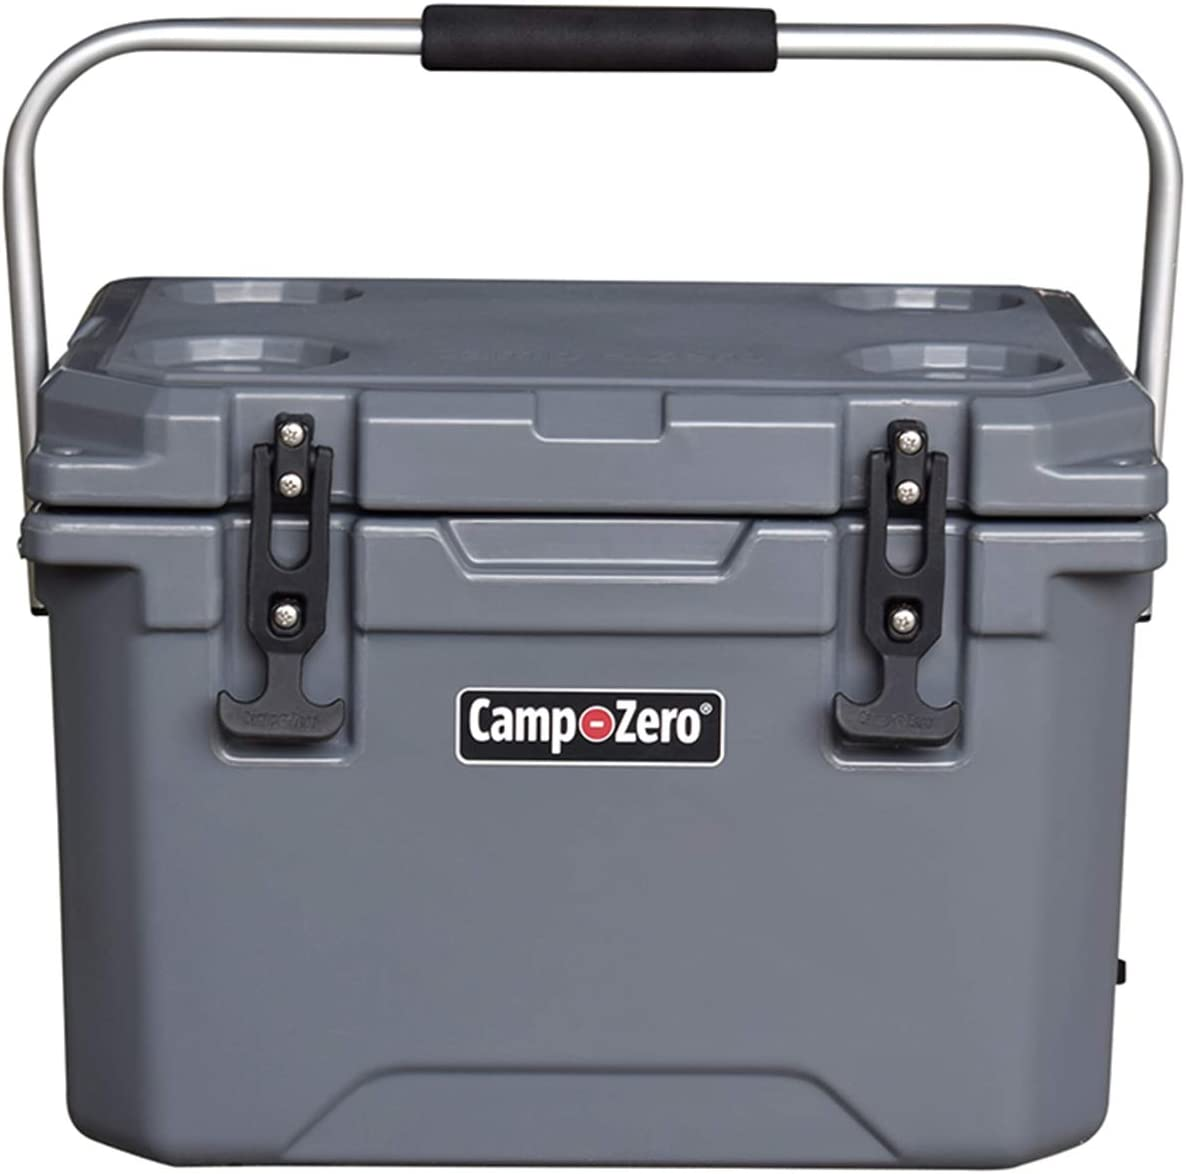 21.13 Quart Premium Cooler//Ice Chest with 4 Molded-in Cup Holders CAMP-ZERO 20L White